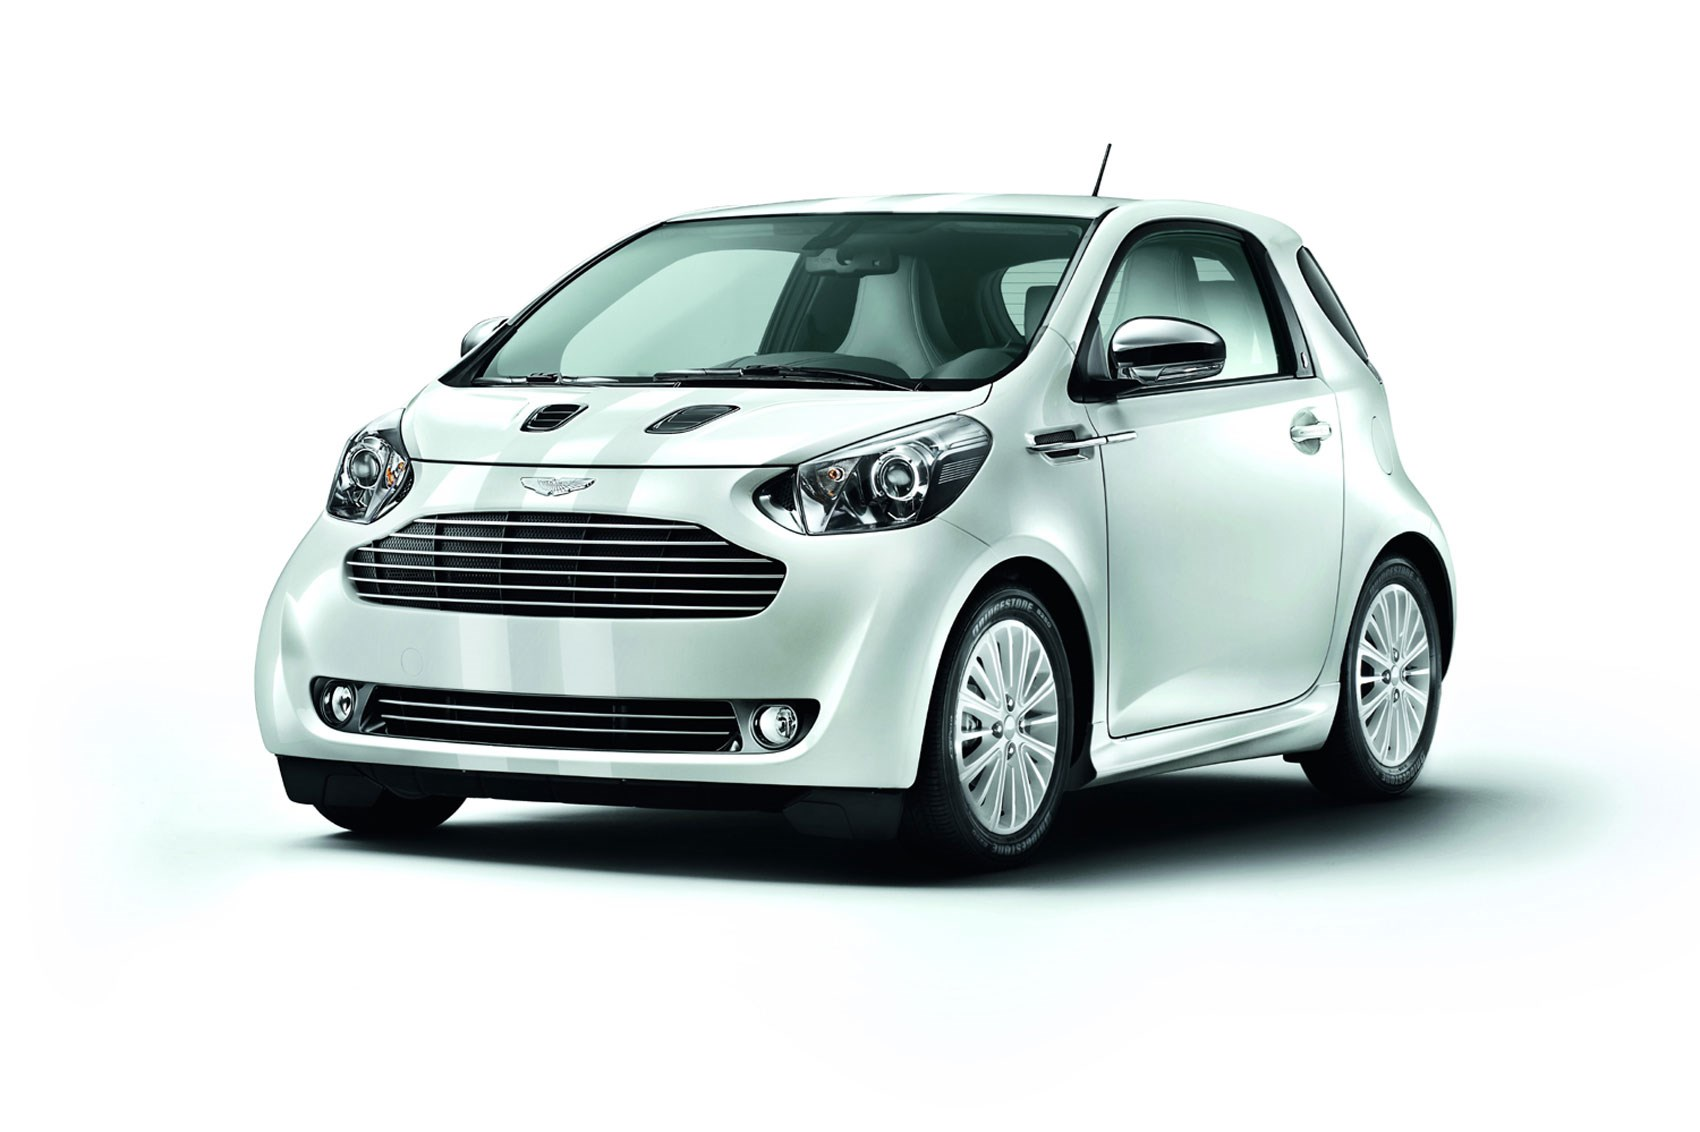 Aston Martin Cygnet CAR Magazine - Aston martin under 20k